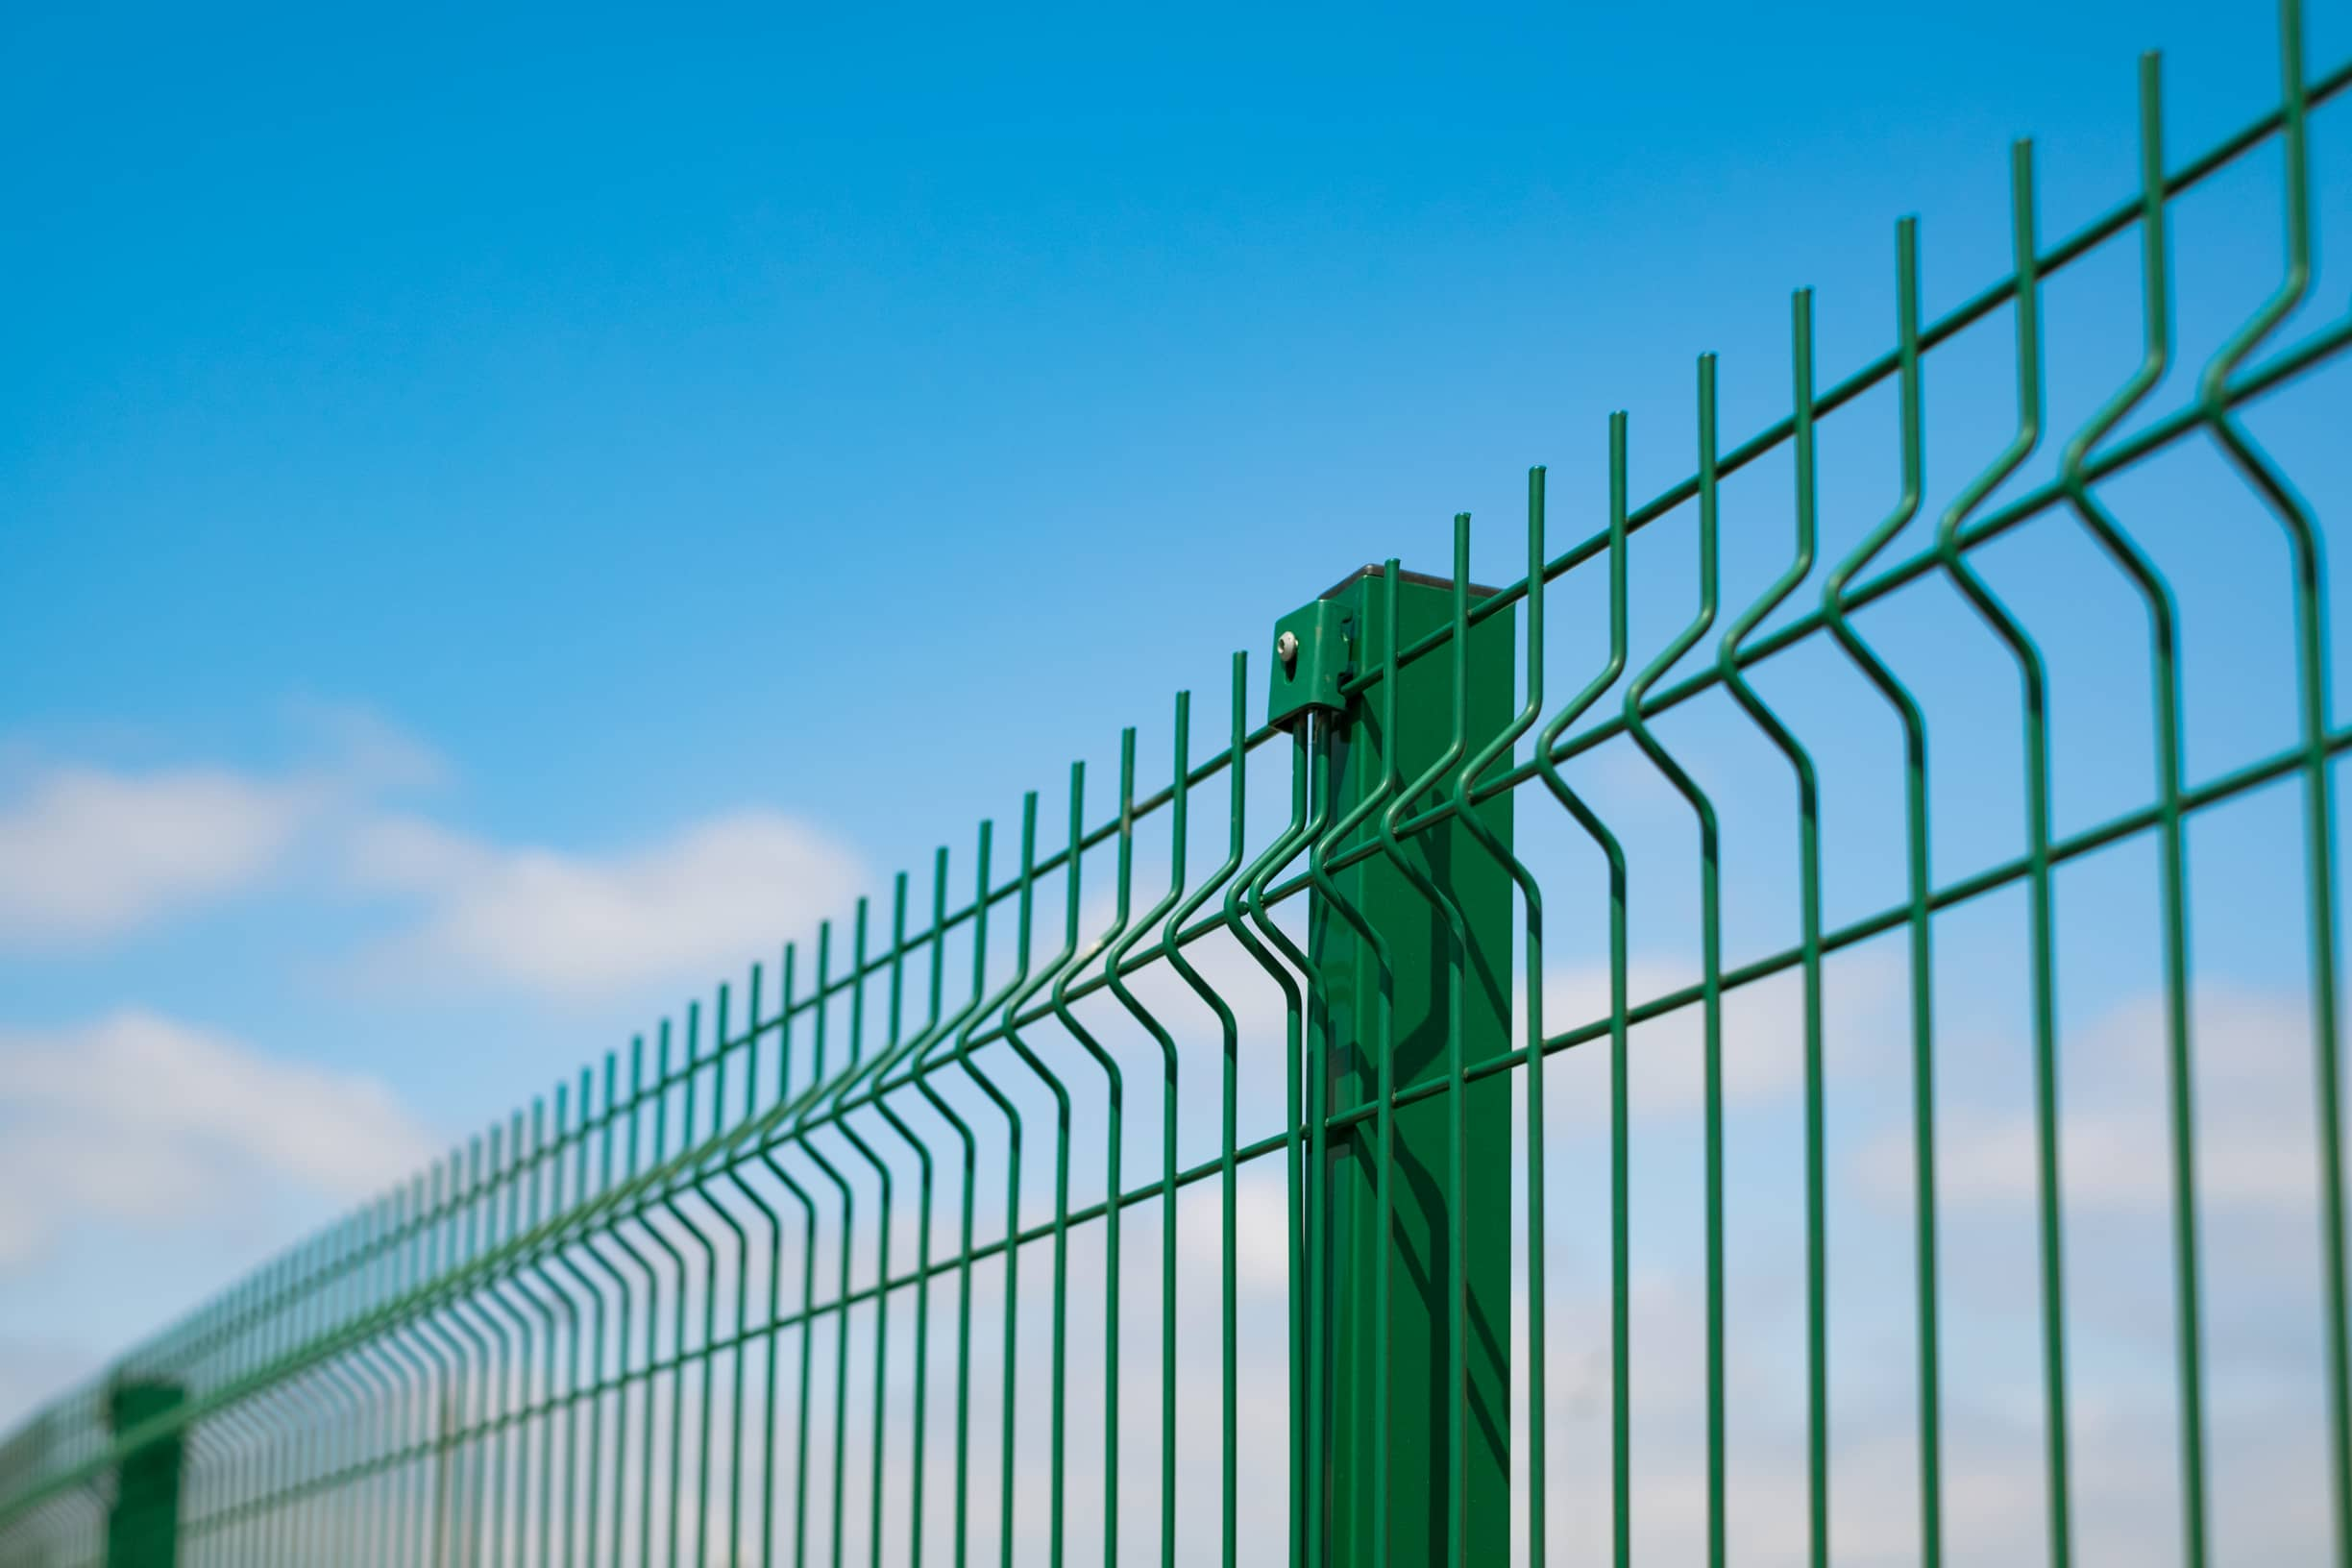 This image shows a green wire metal fence.